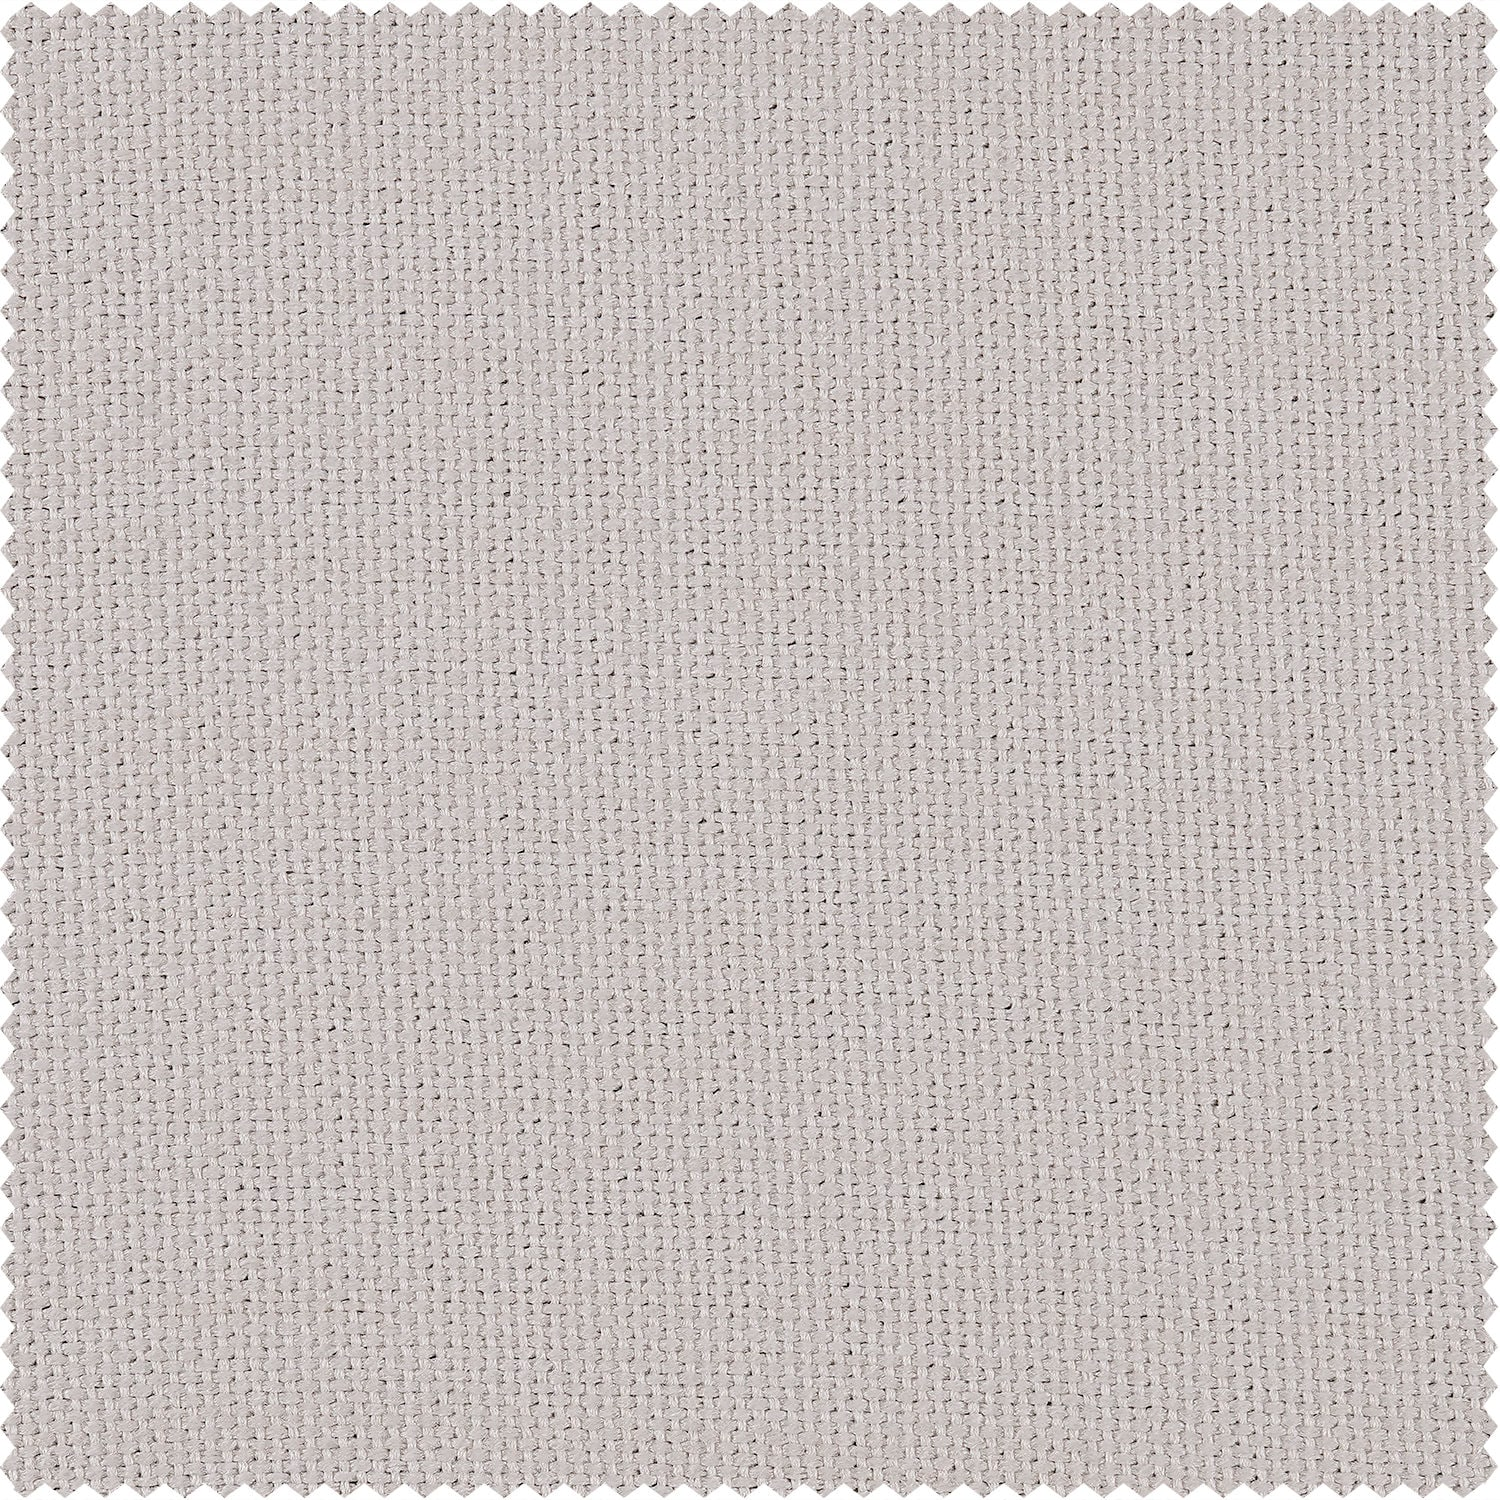 Birch Faux Linen Blackout Room Darkening Swatch